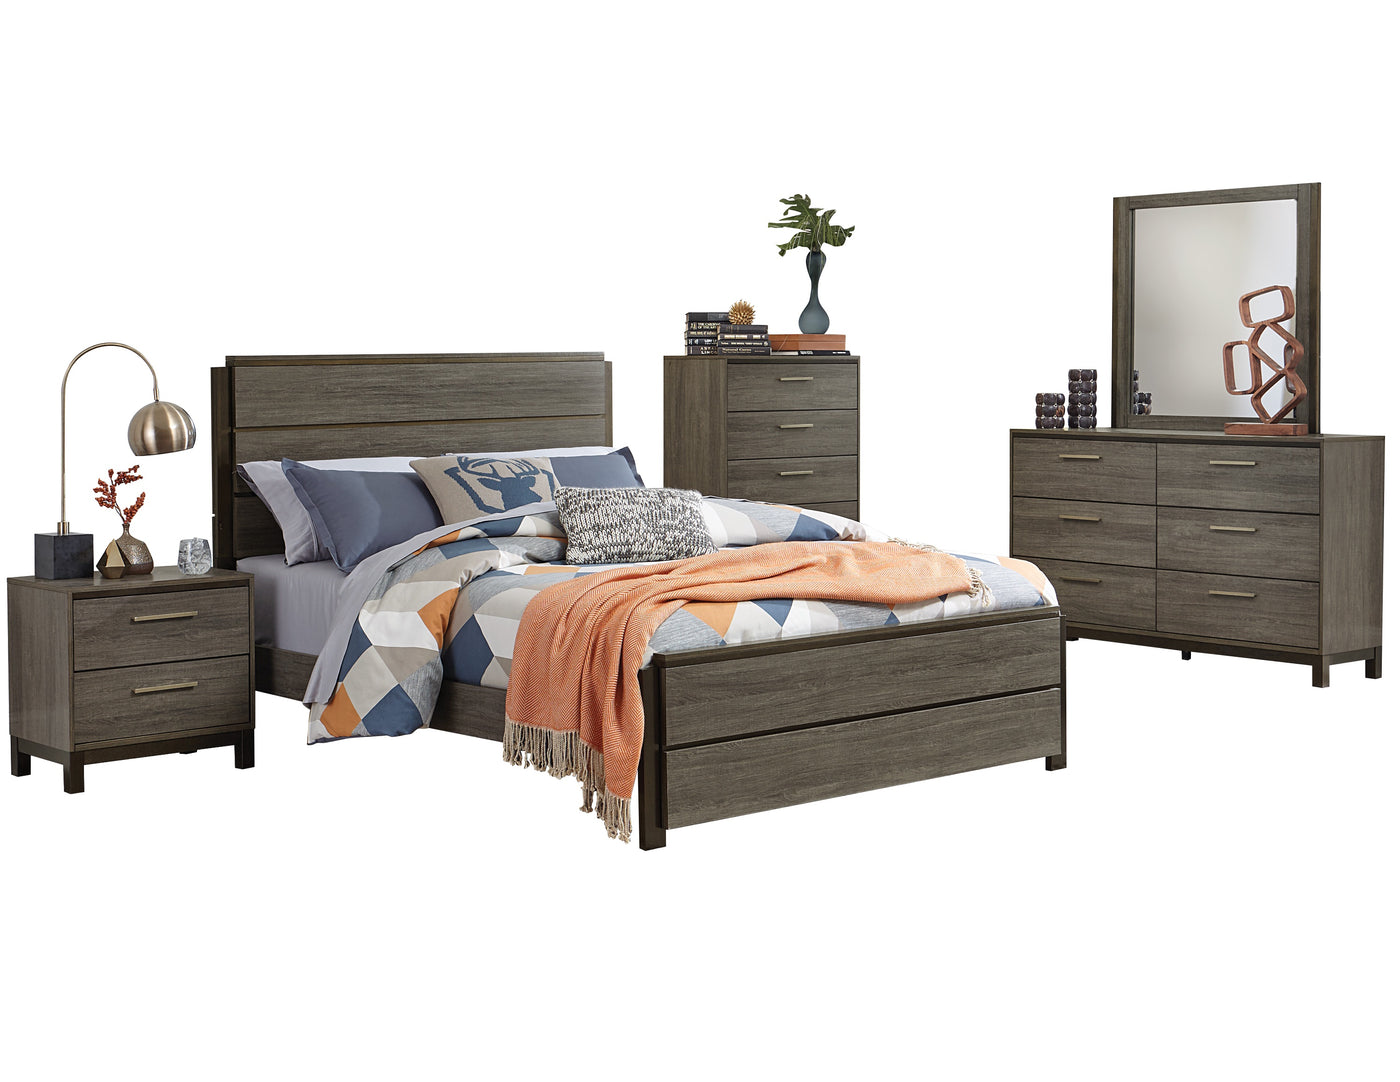 Volos 5pc Bedroom Set Queen Bed Dresser Mirror Nightstand Chest In Mid Modern Grey